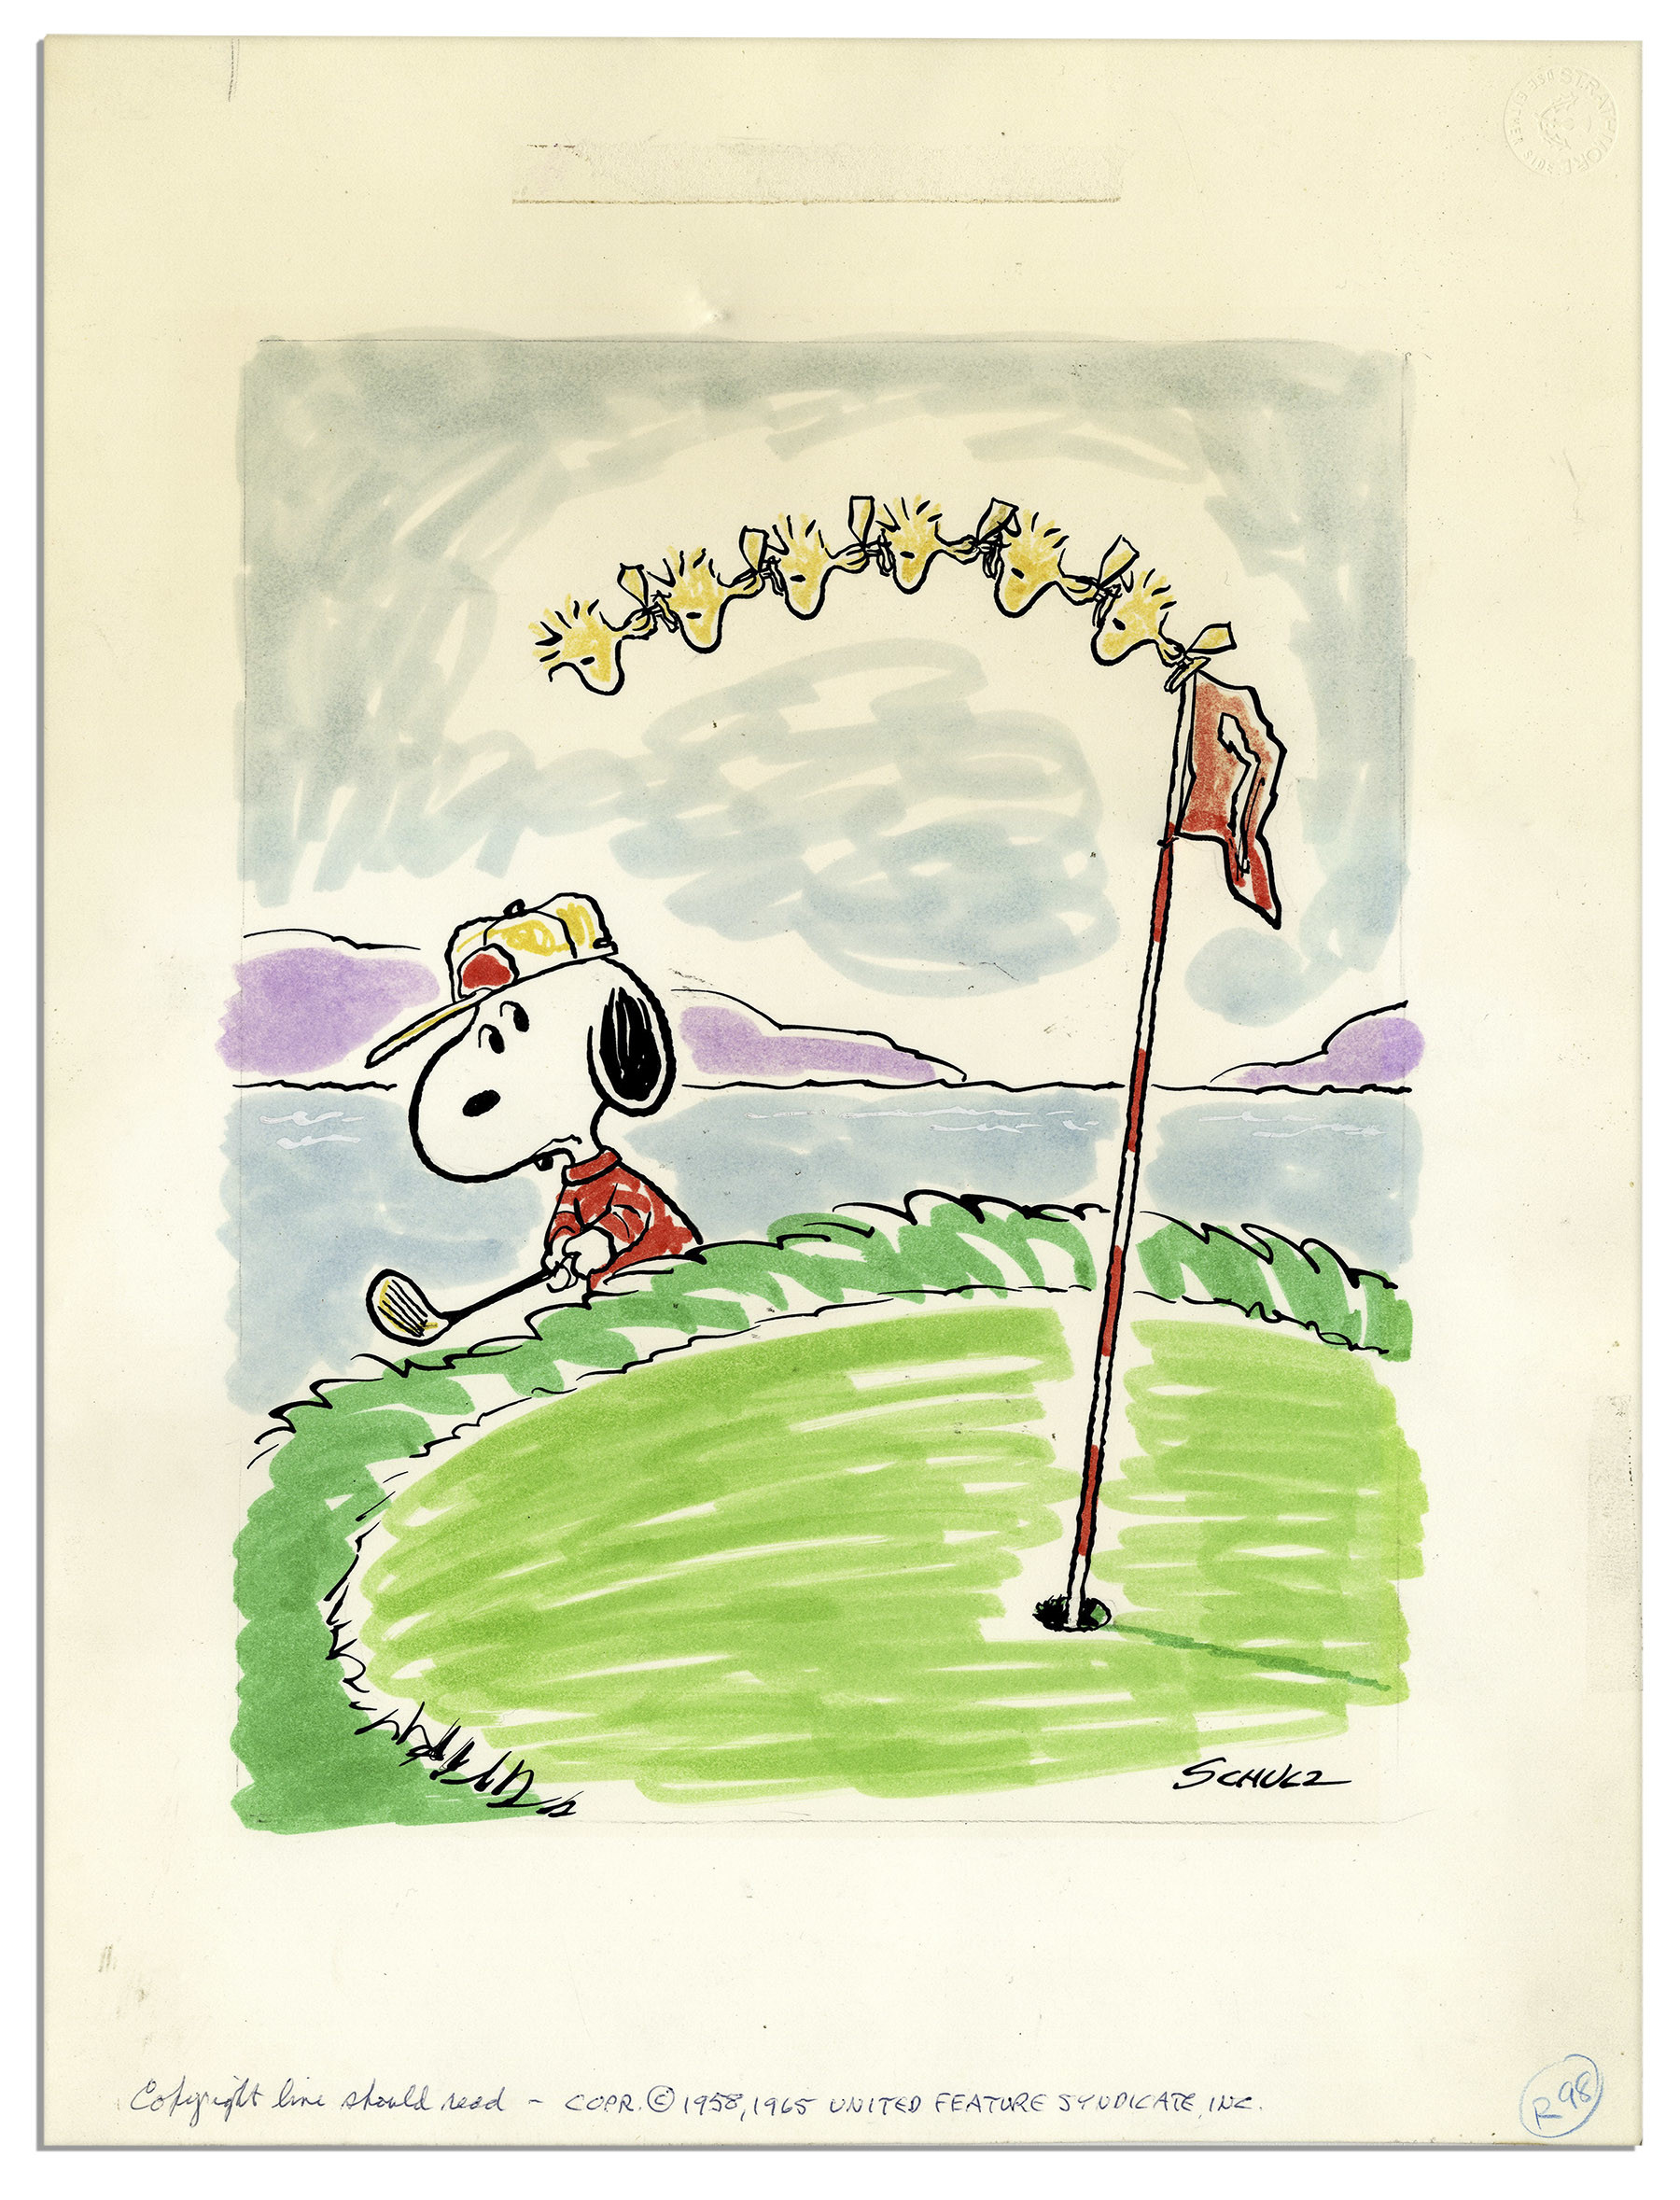 Charles Schulz ''Peanuts'' Golf Theme Color Original Artwork Starring Snoopy  Woodstock From 1965